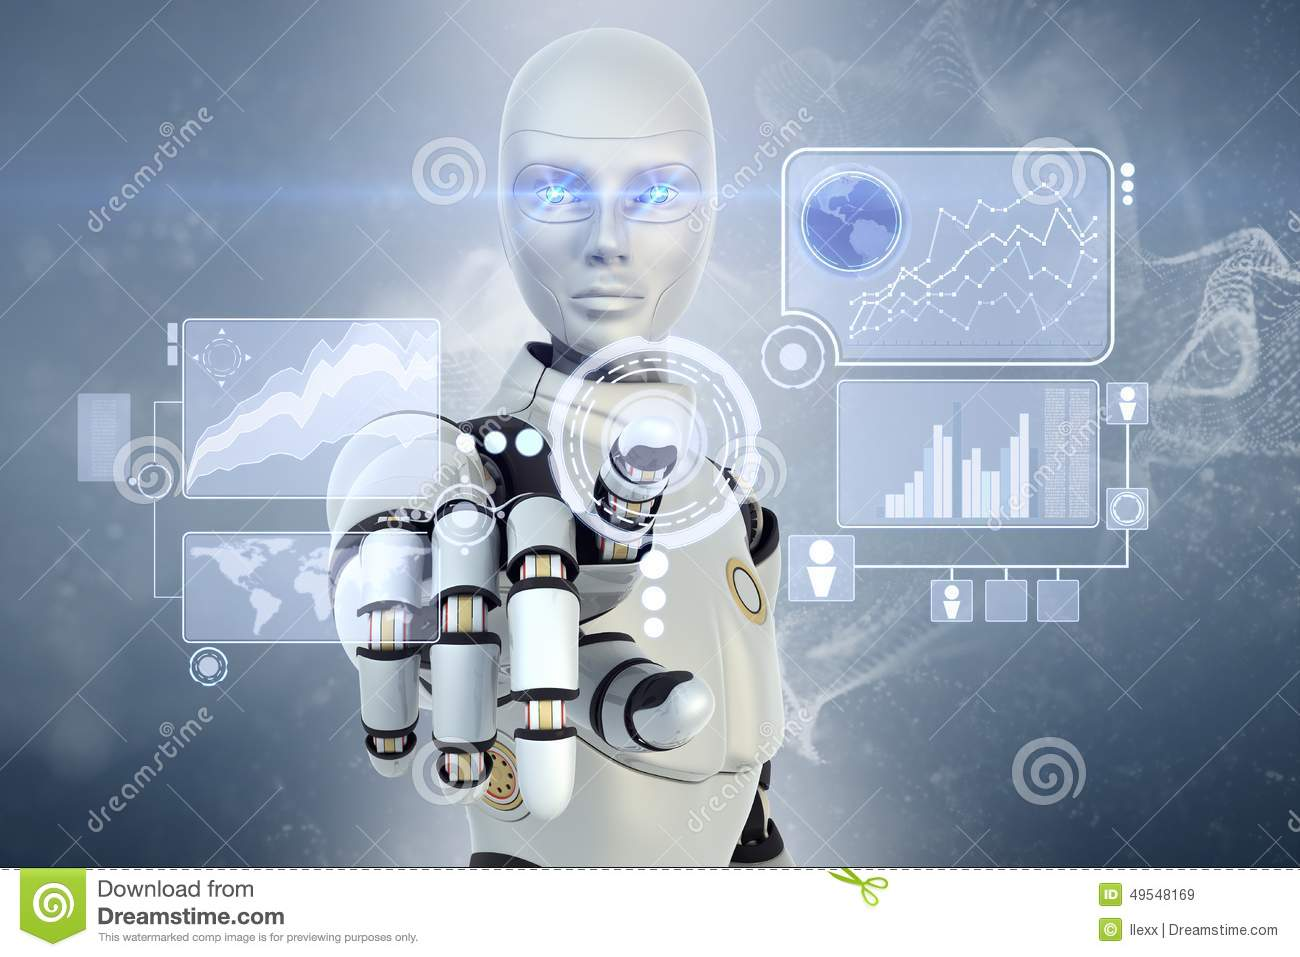 Robot and touchscreen